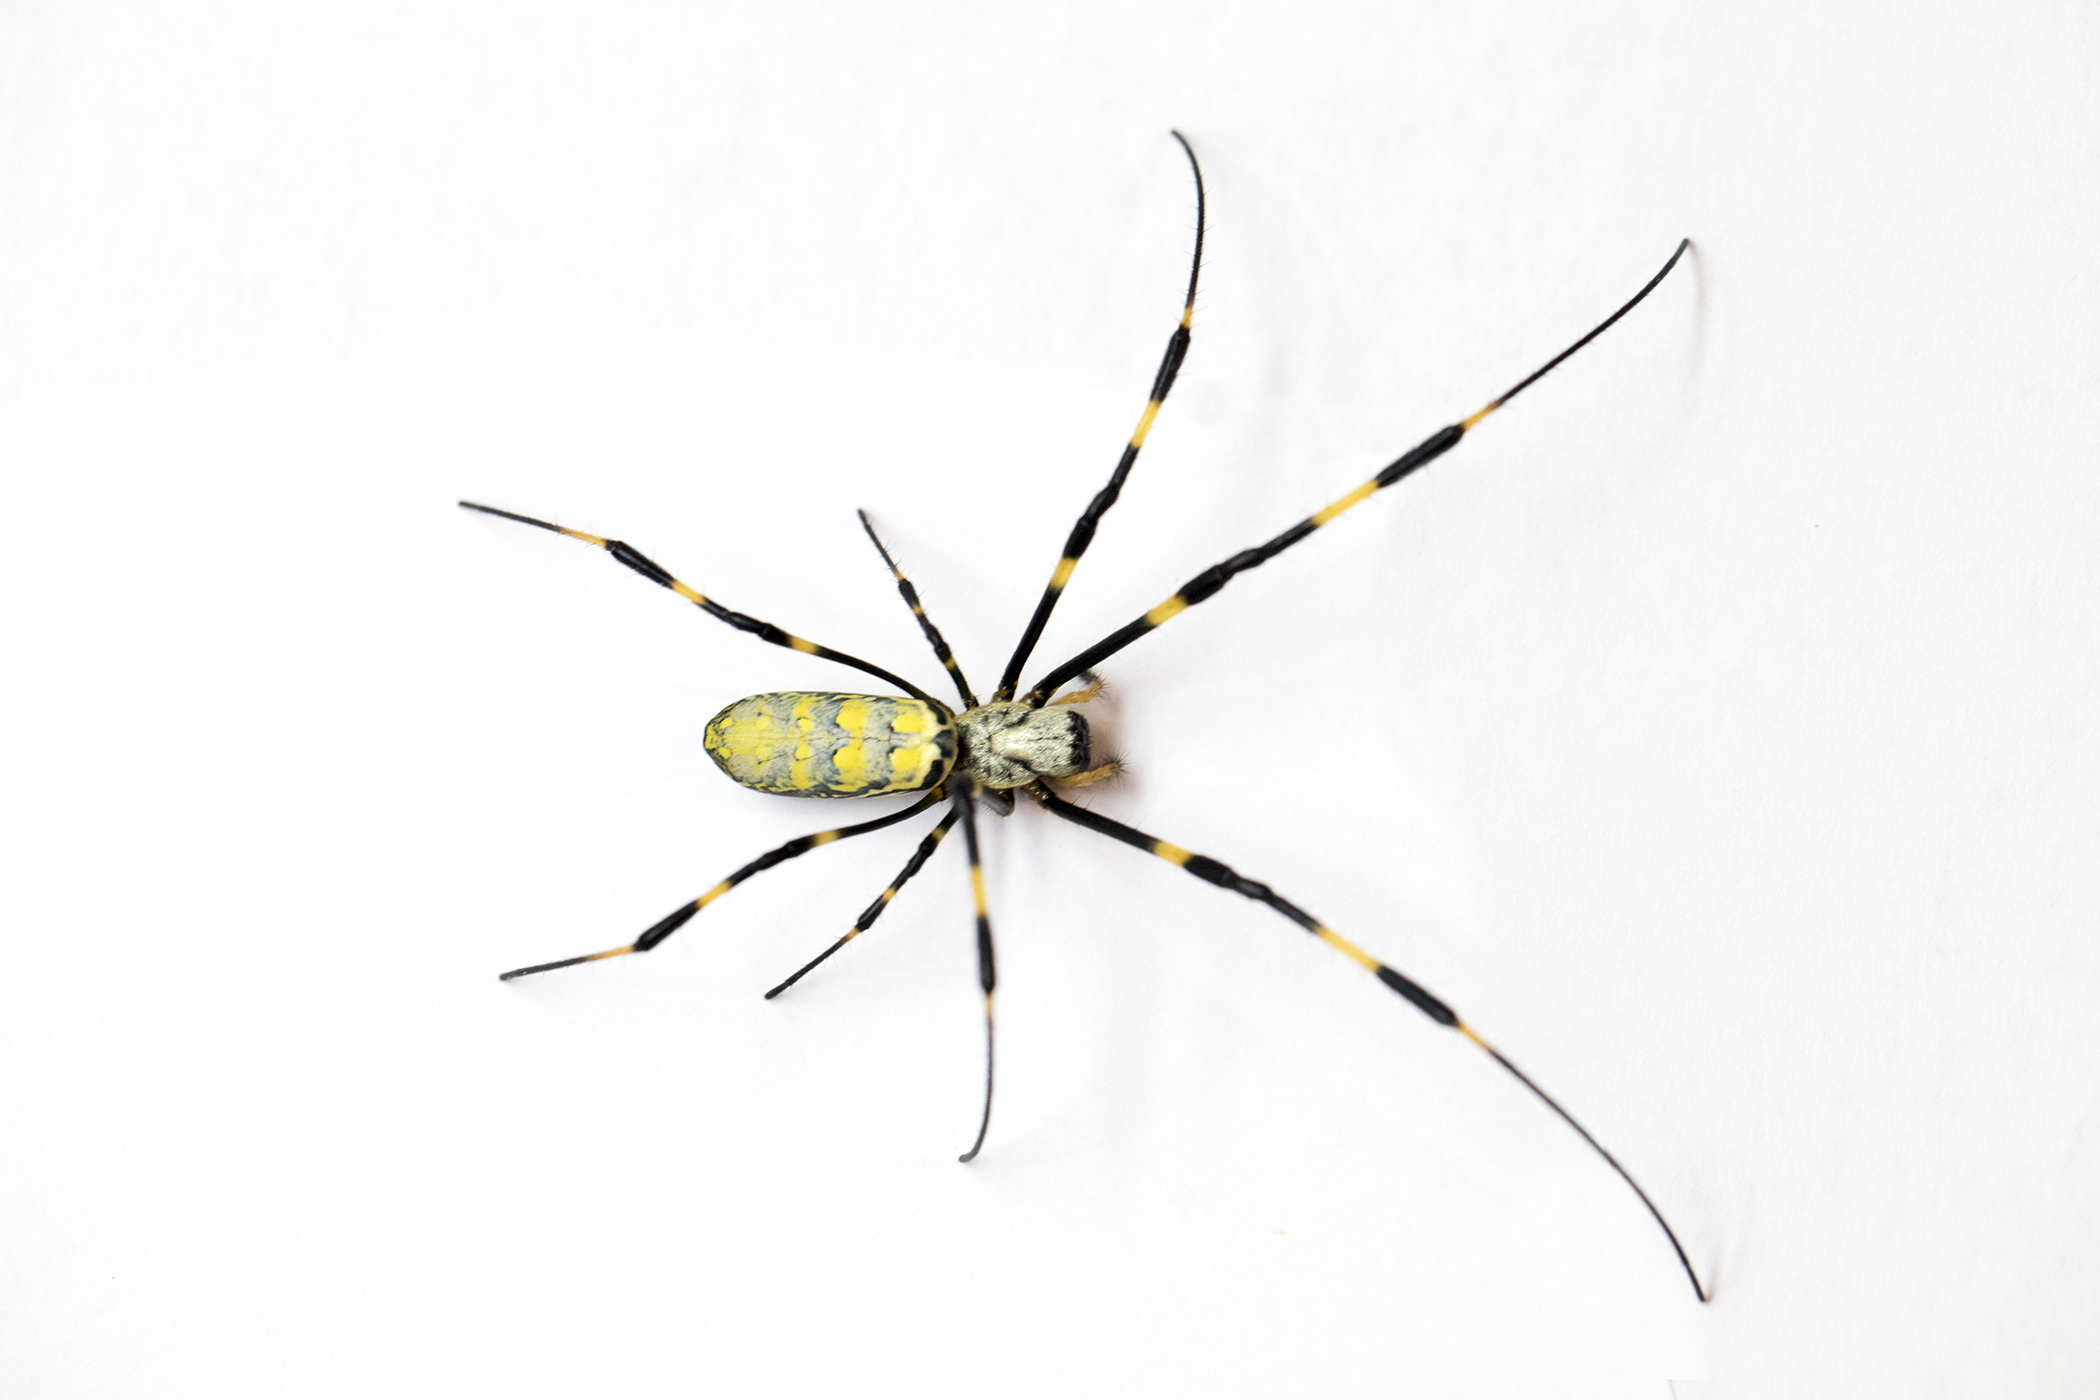 Joro spiders, which can be nearly 3 inches across when their legs are fully extended, are roughly the same size as banana spiders and yellow garden spiders, but they have distinctive yellow and blue-black stripes on their backs and bright red markings on their undersides, which are unique.